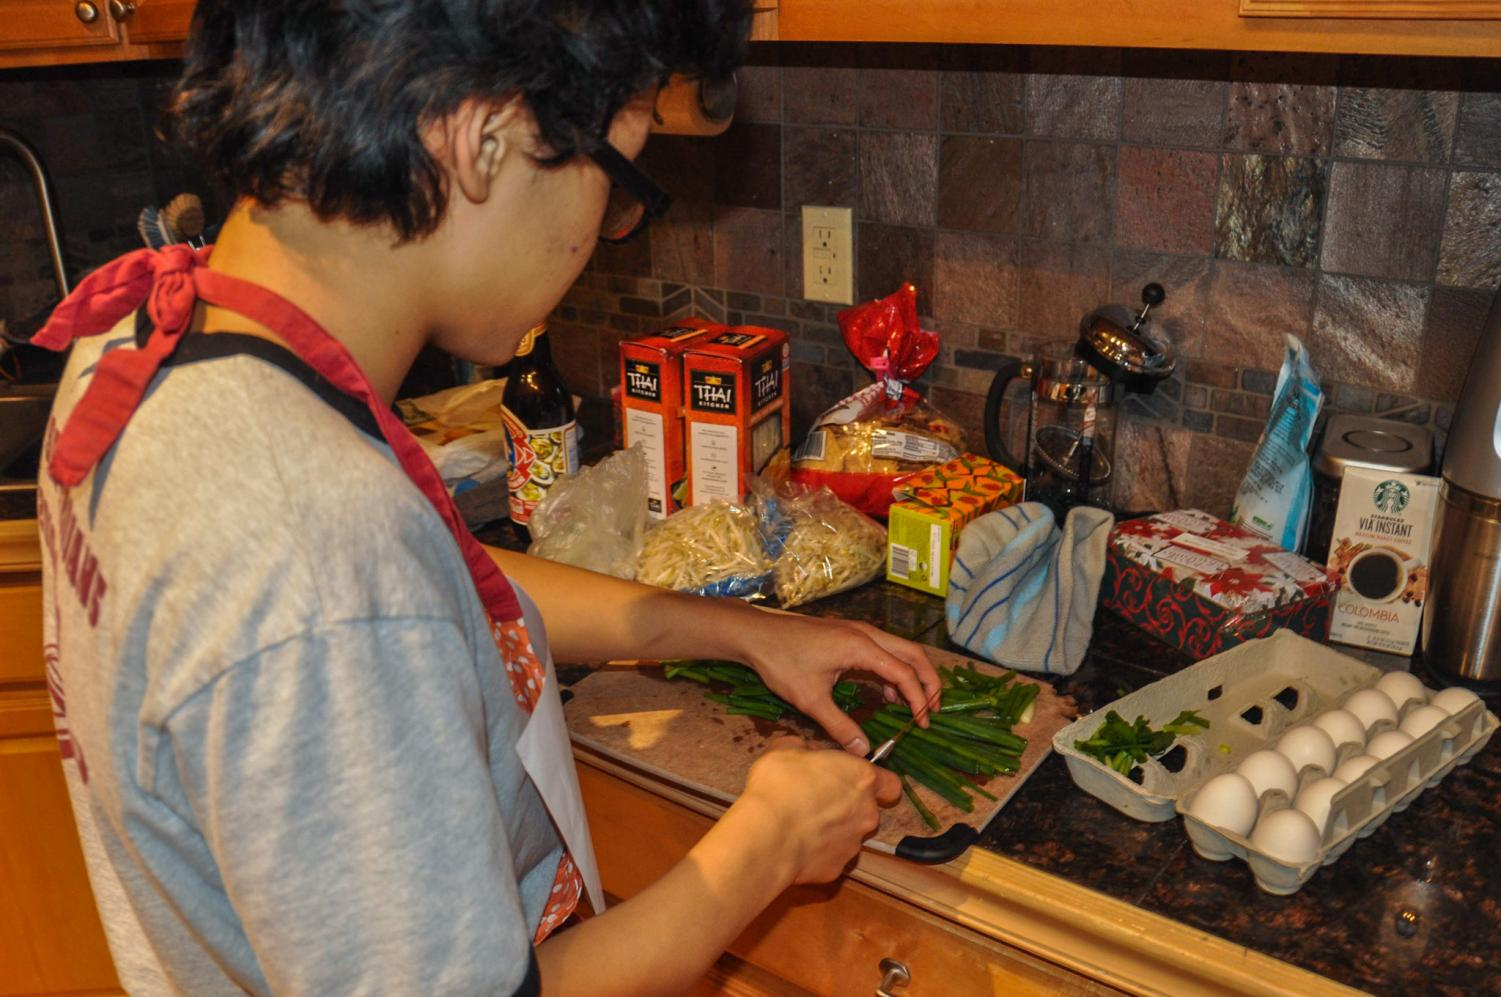 Pah Nah chopping vegetables for the stirfry